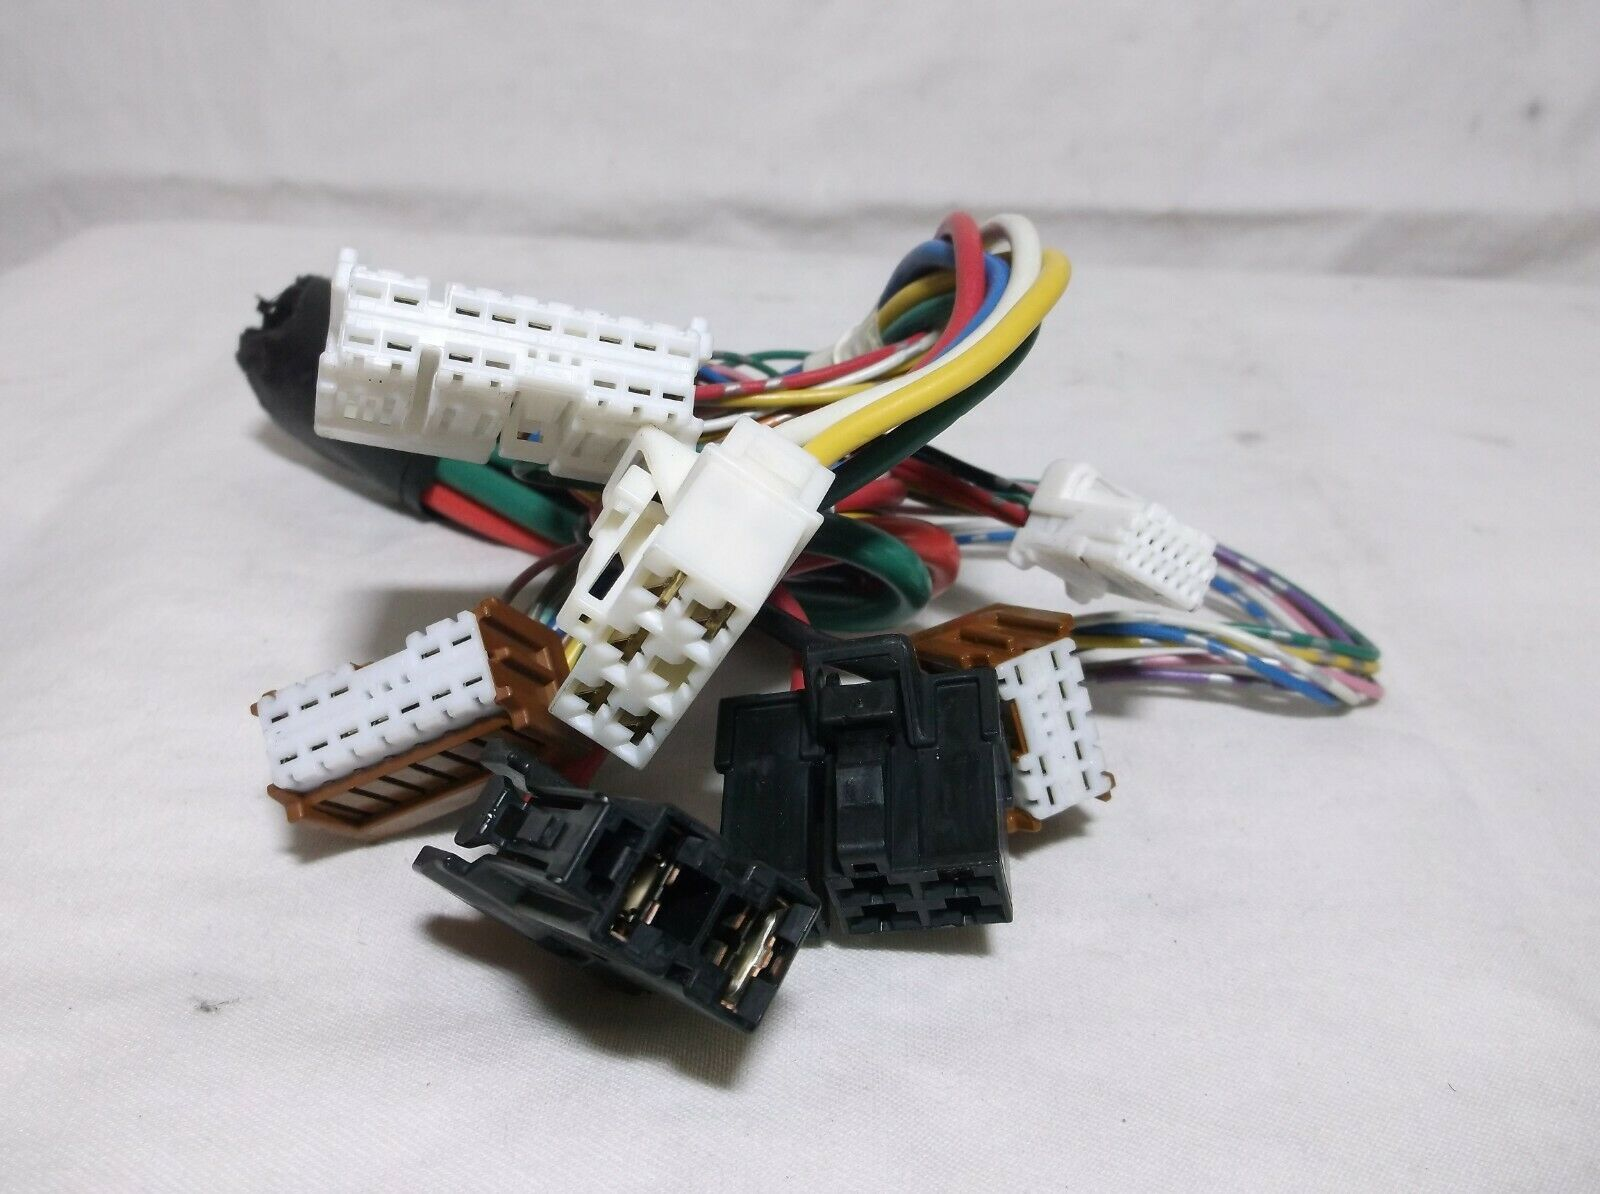 07 08 09 10 11 nissan versa fuse relay box harness wires. Black Bedroom Furniture Sets. Home Design Ideas